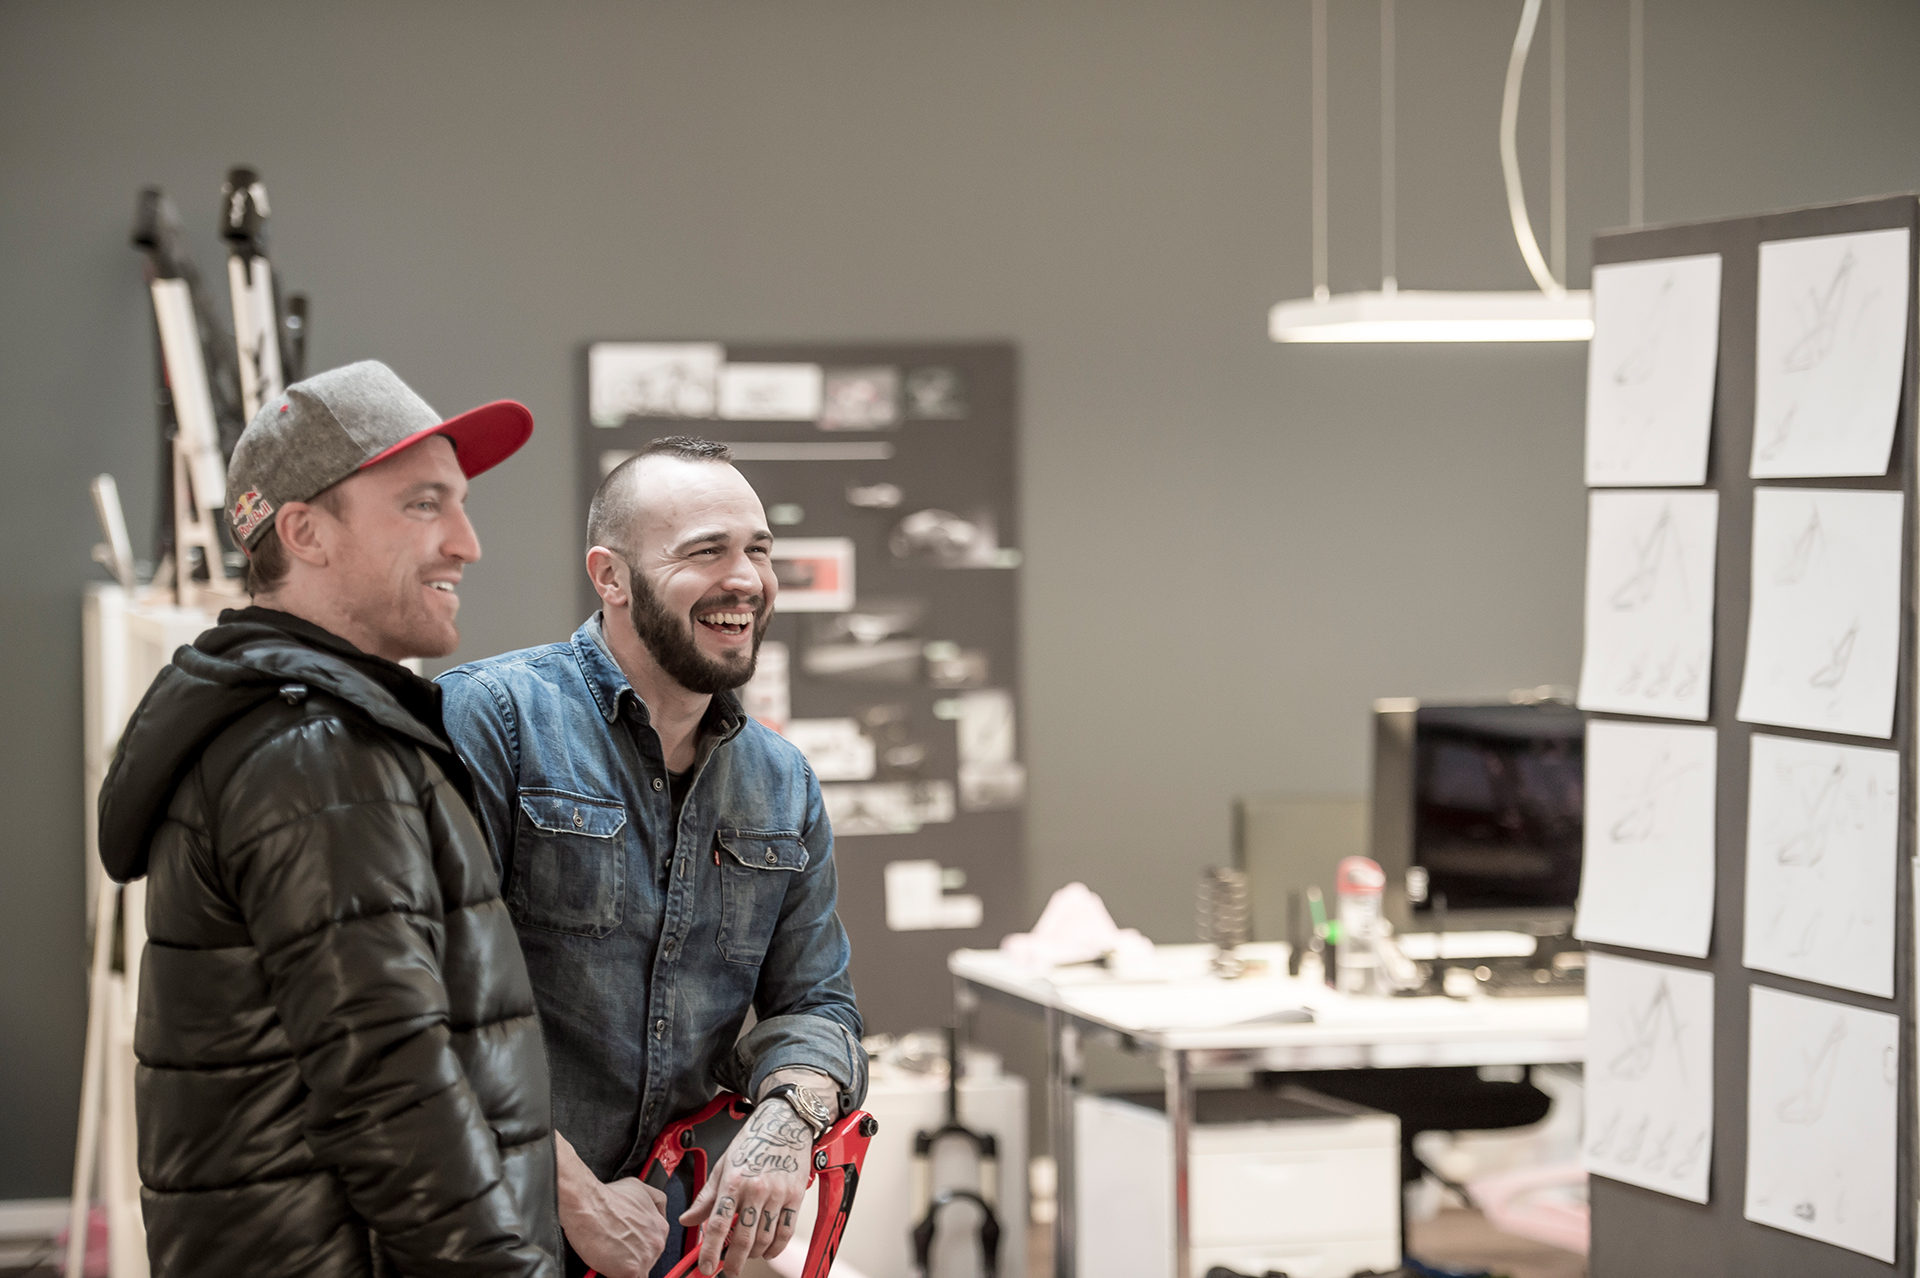 Company Visit by Christoph Laue